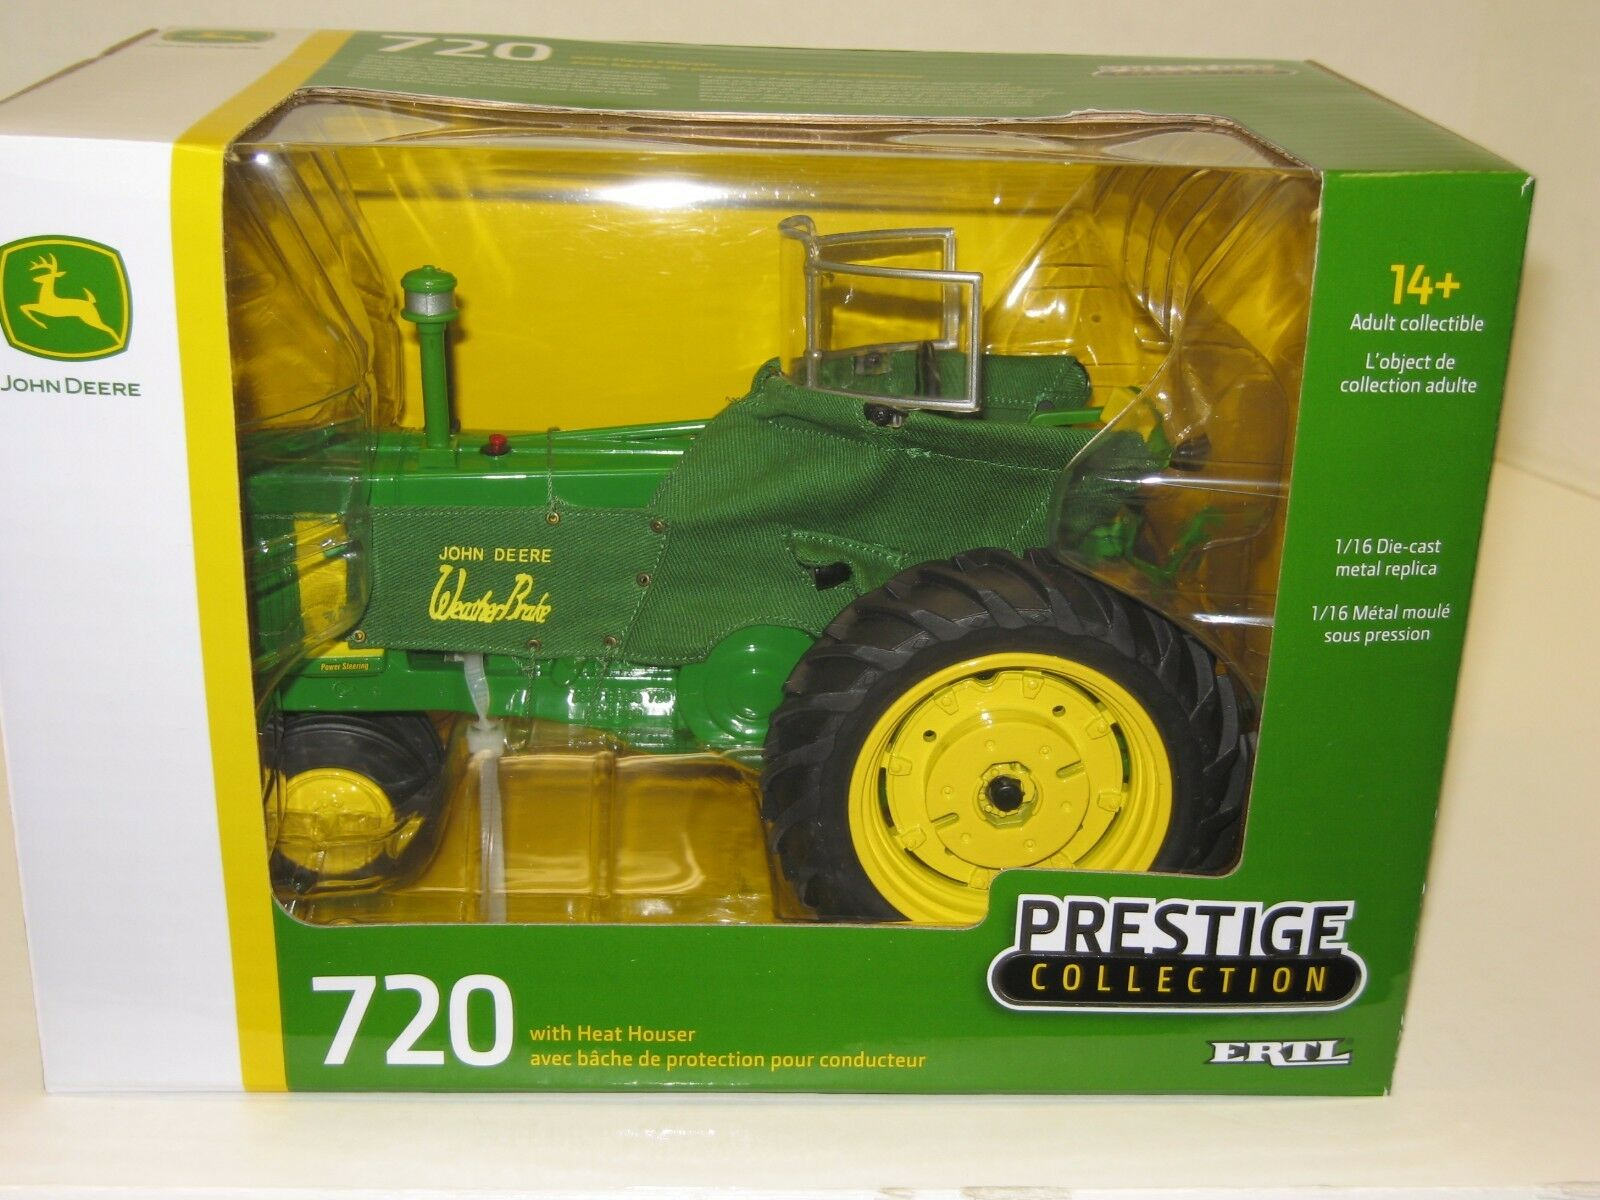 1 16 JOHN DEERE 720 w HEAT HOUSER PRESTIGE COLLECTION NIB free shipping